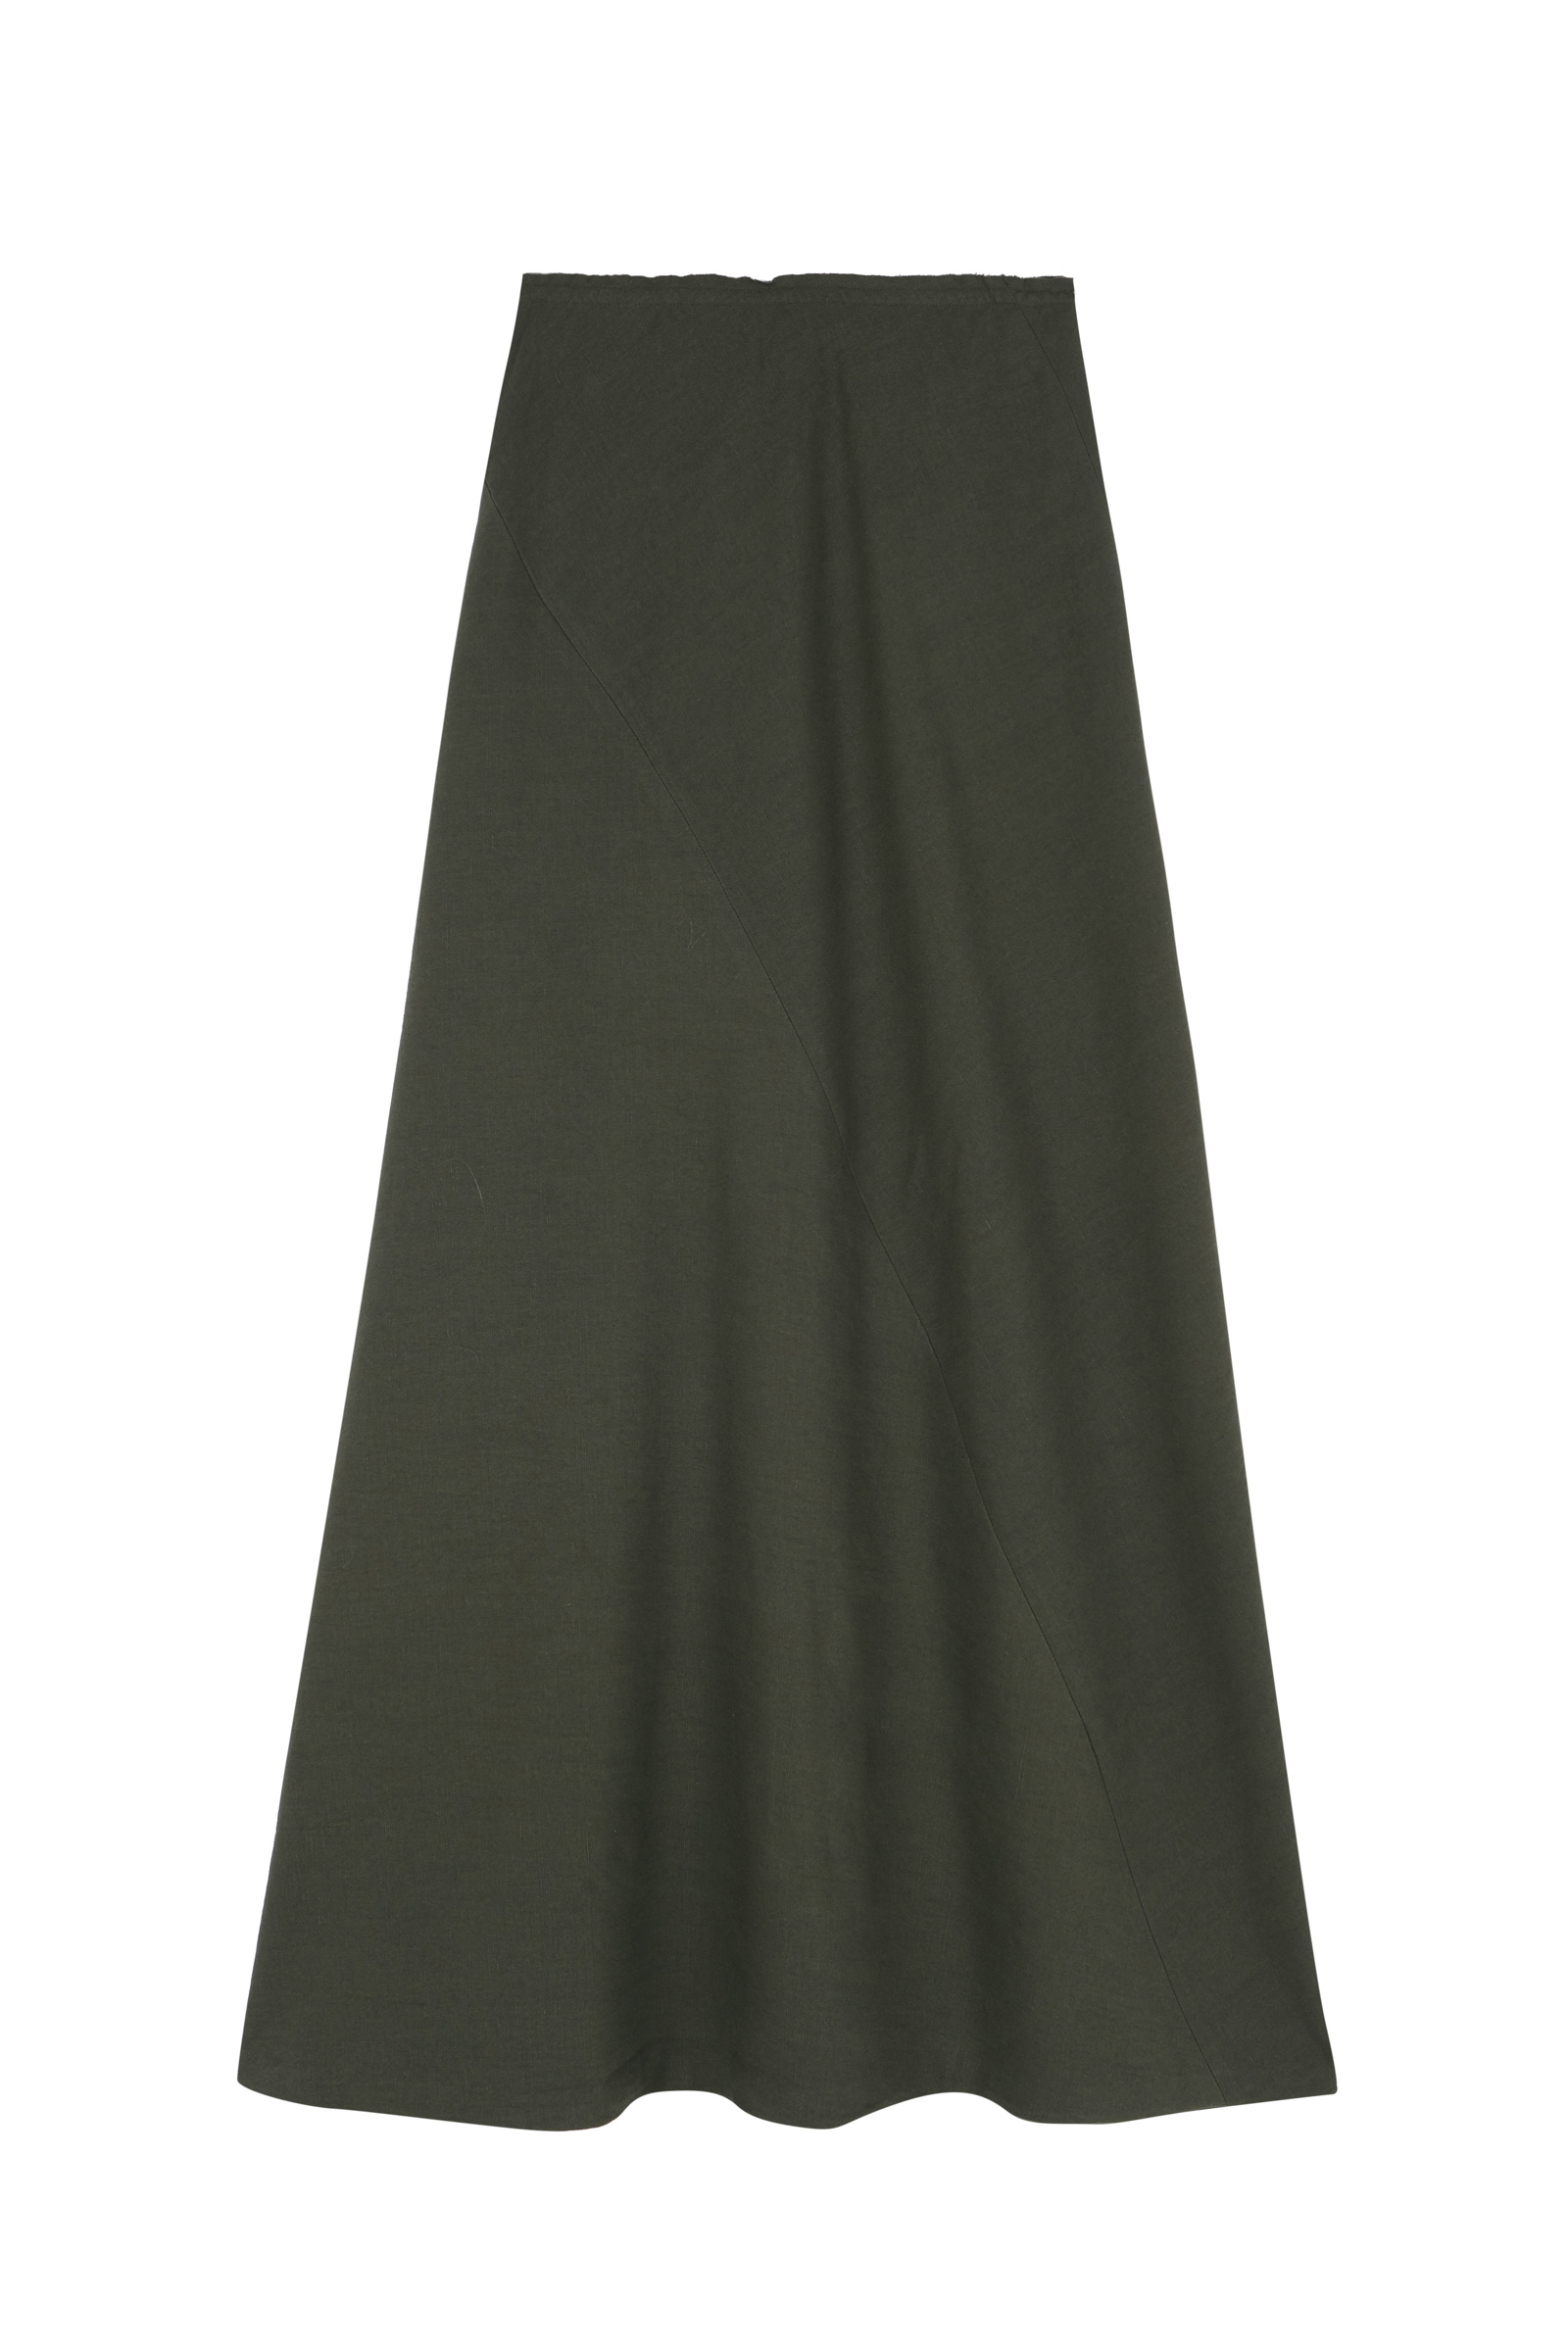 ARTO GREEN SKIRT - Cortana Moda